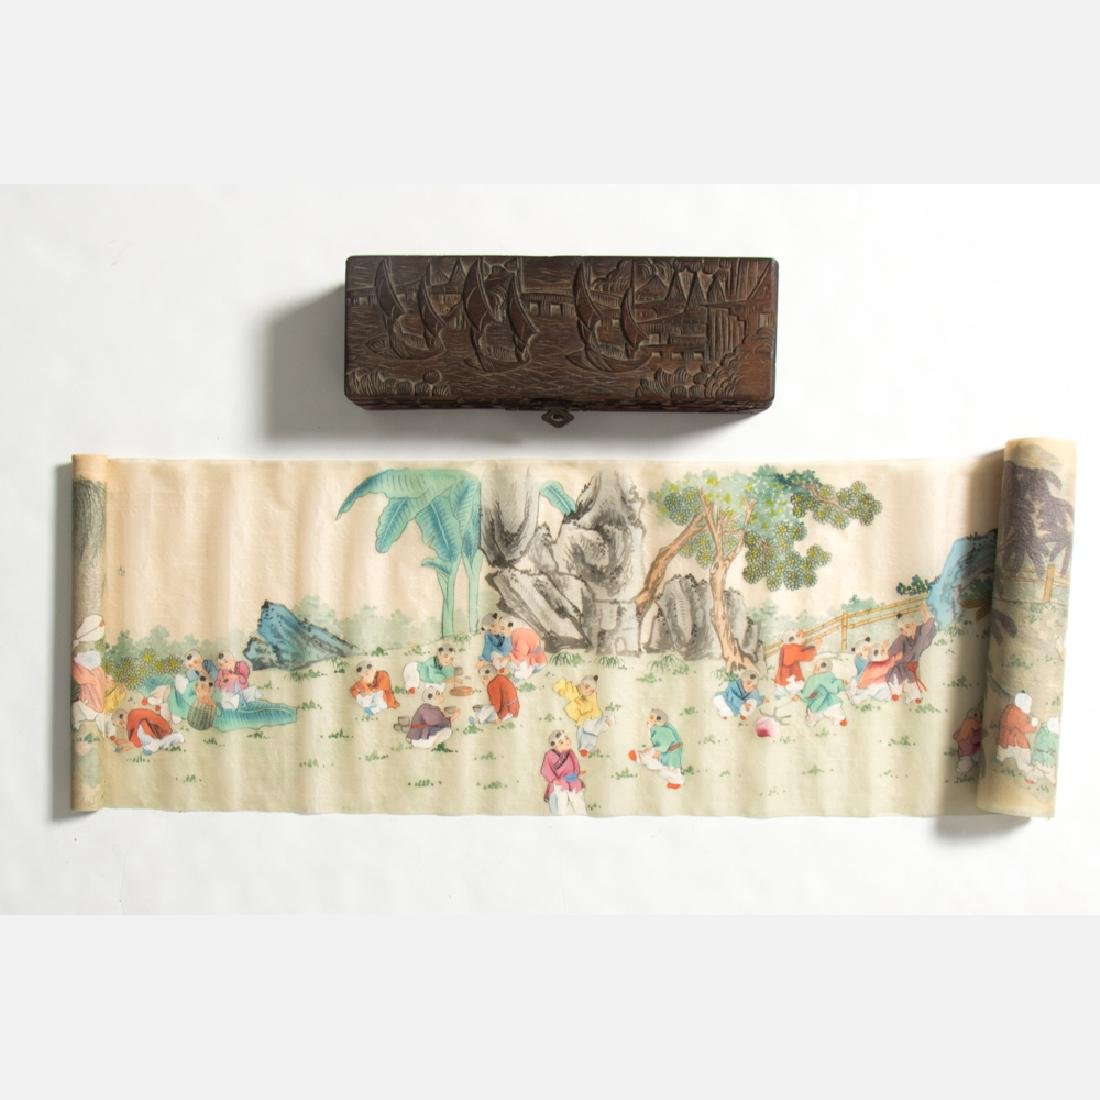 A Chinese Painted Silk 'Thousand Faces' Scroll in